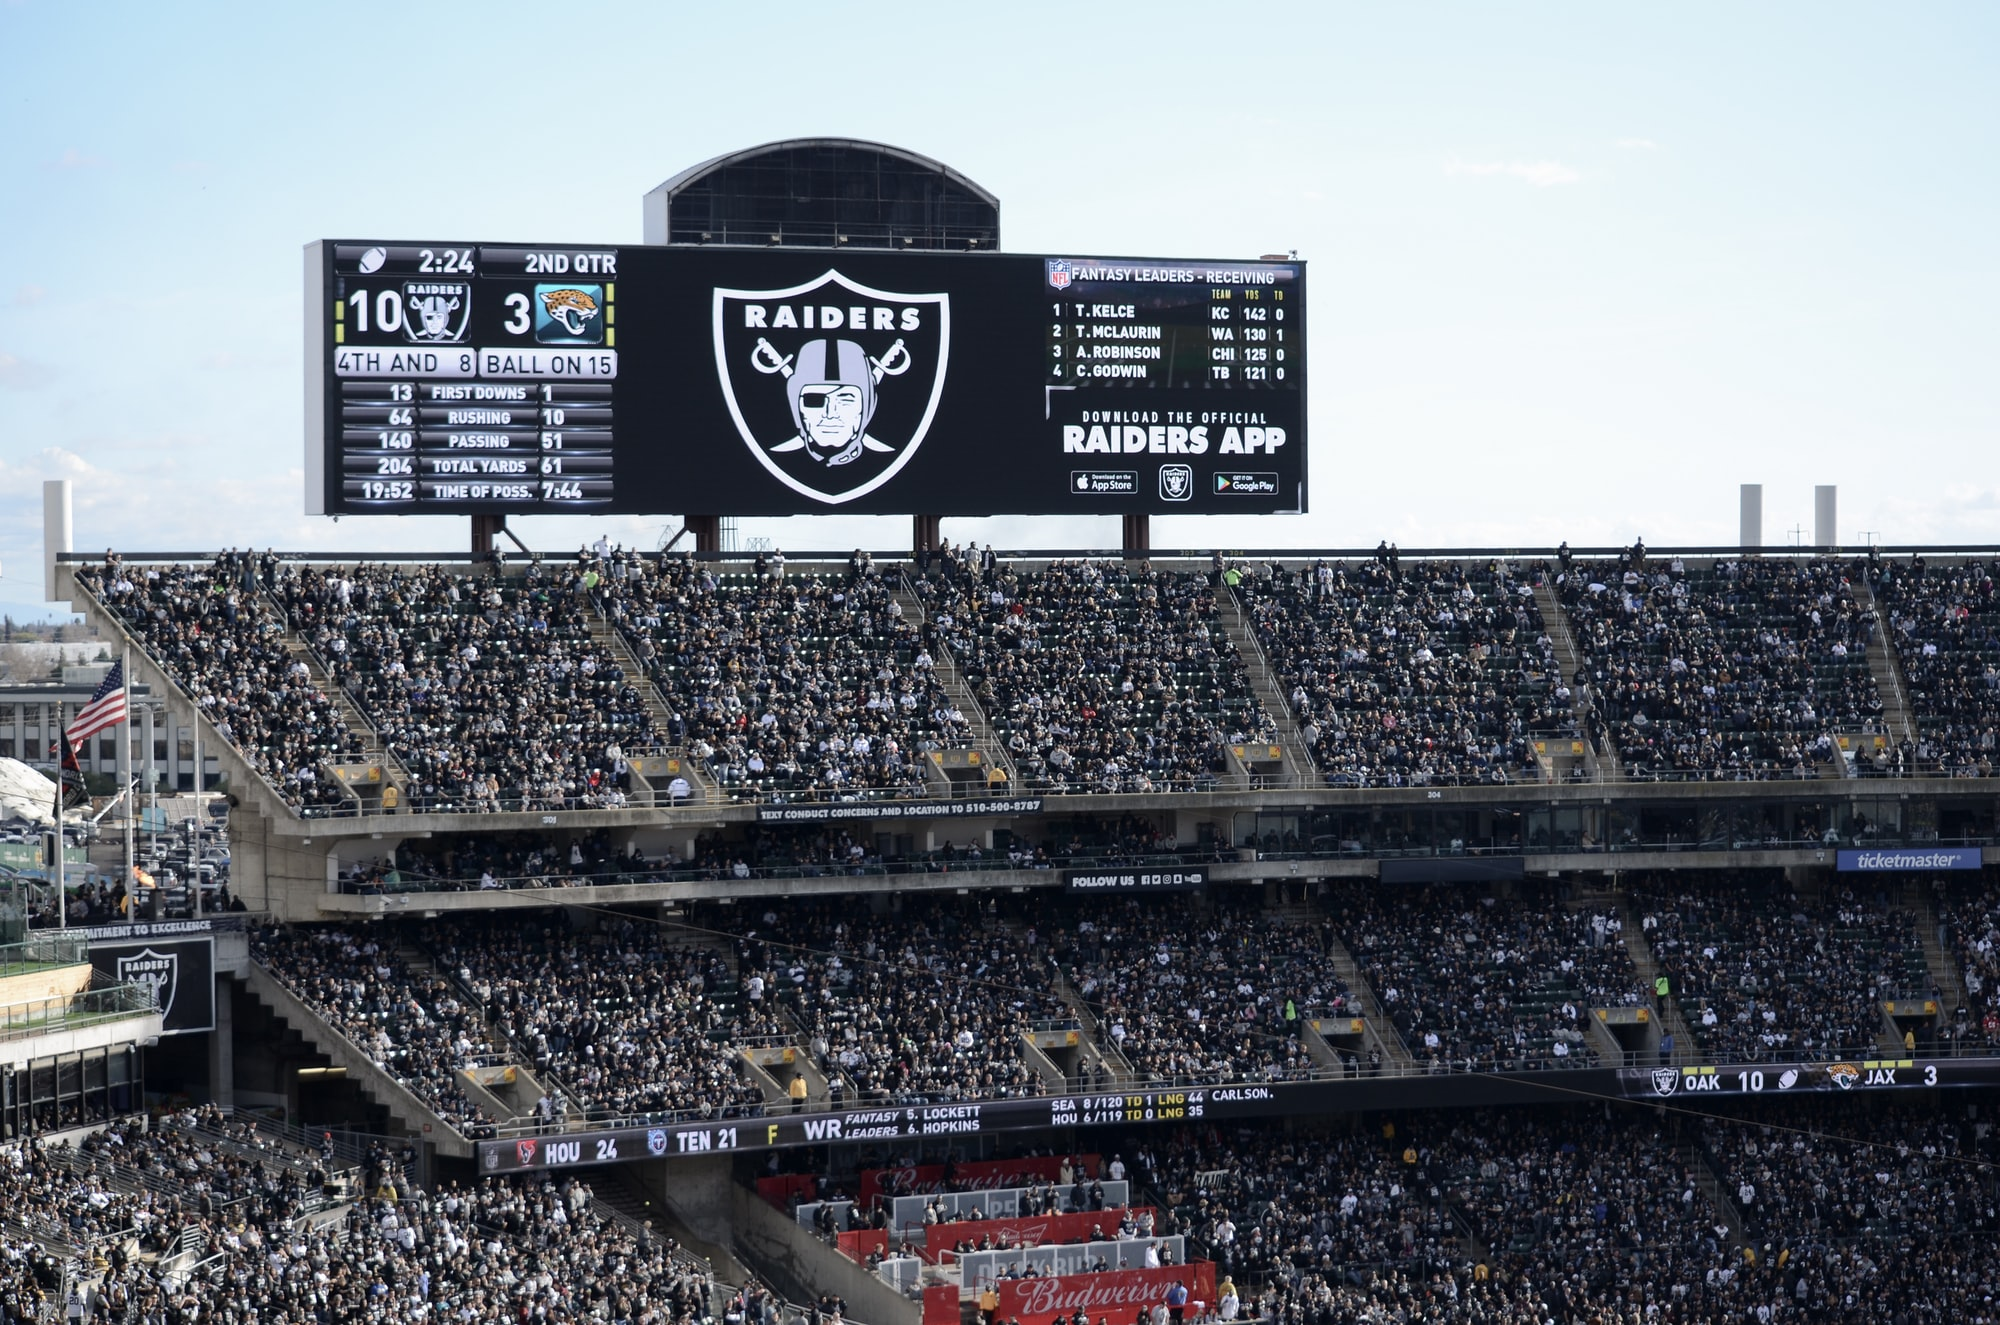 This was taken on the last game that the Raiders had at the O.co Coliseum at Oakland, CA.